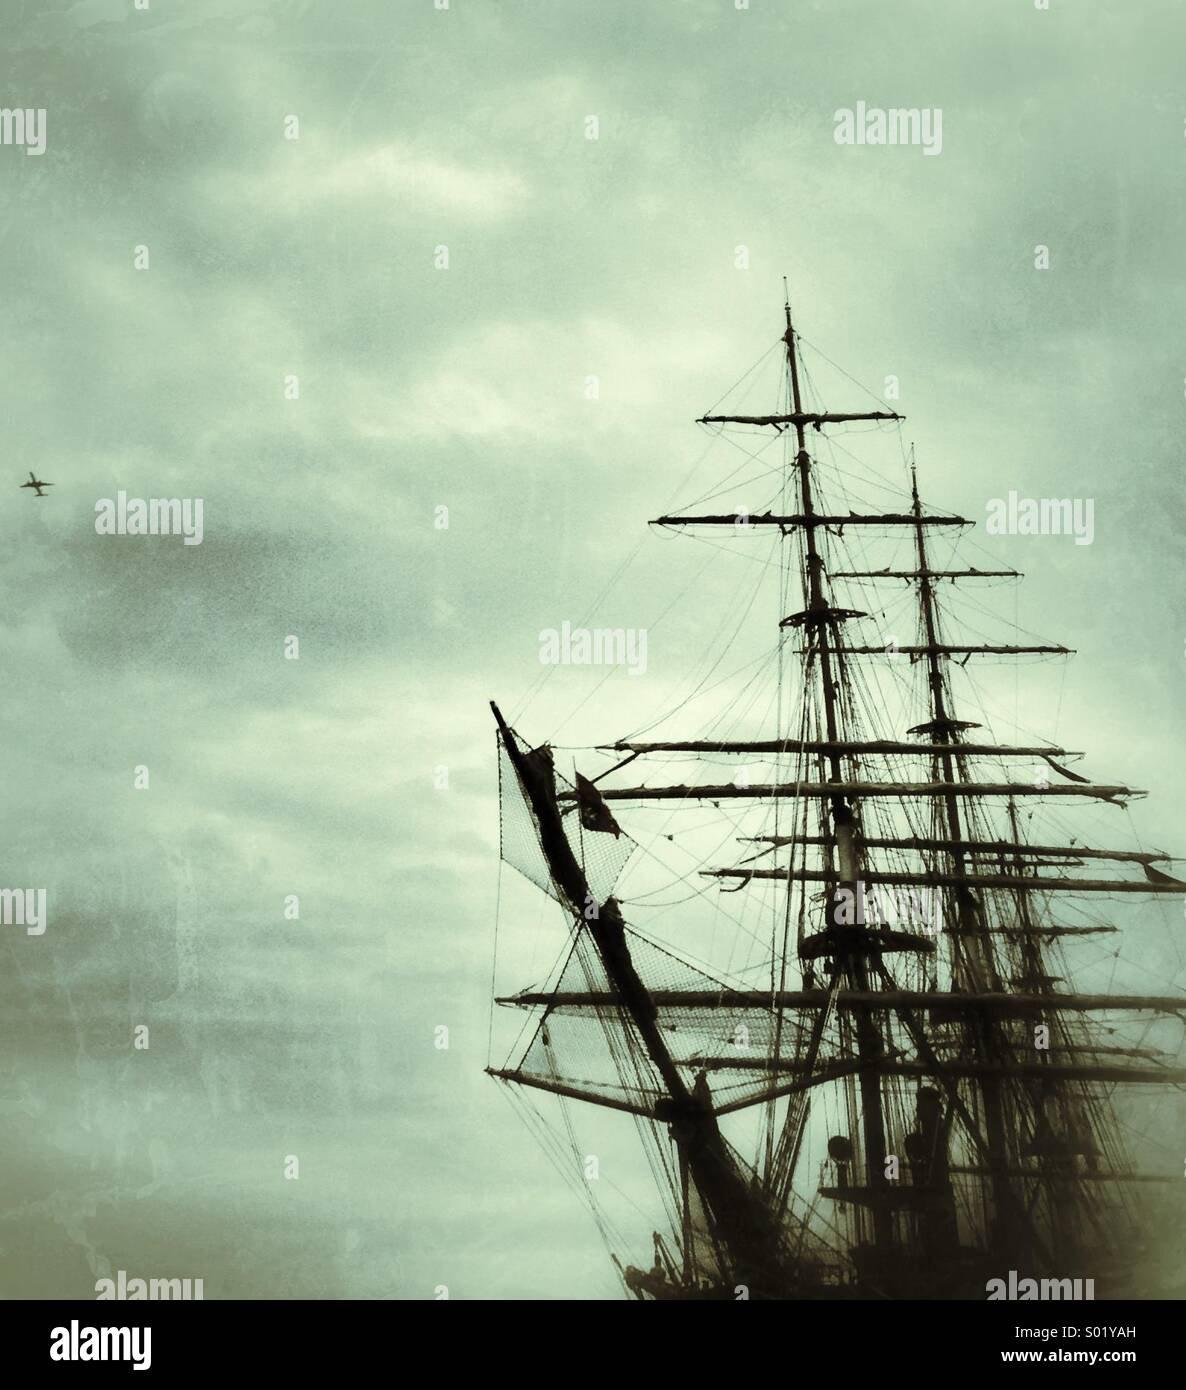 Tall ship and plane - Stock Image